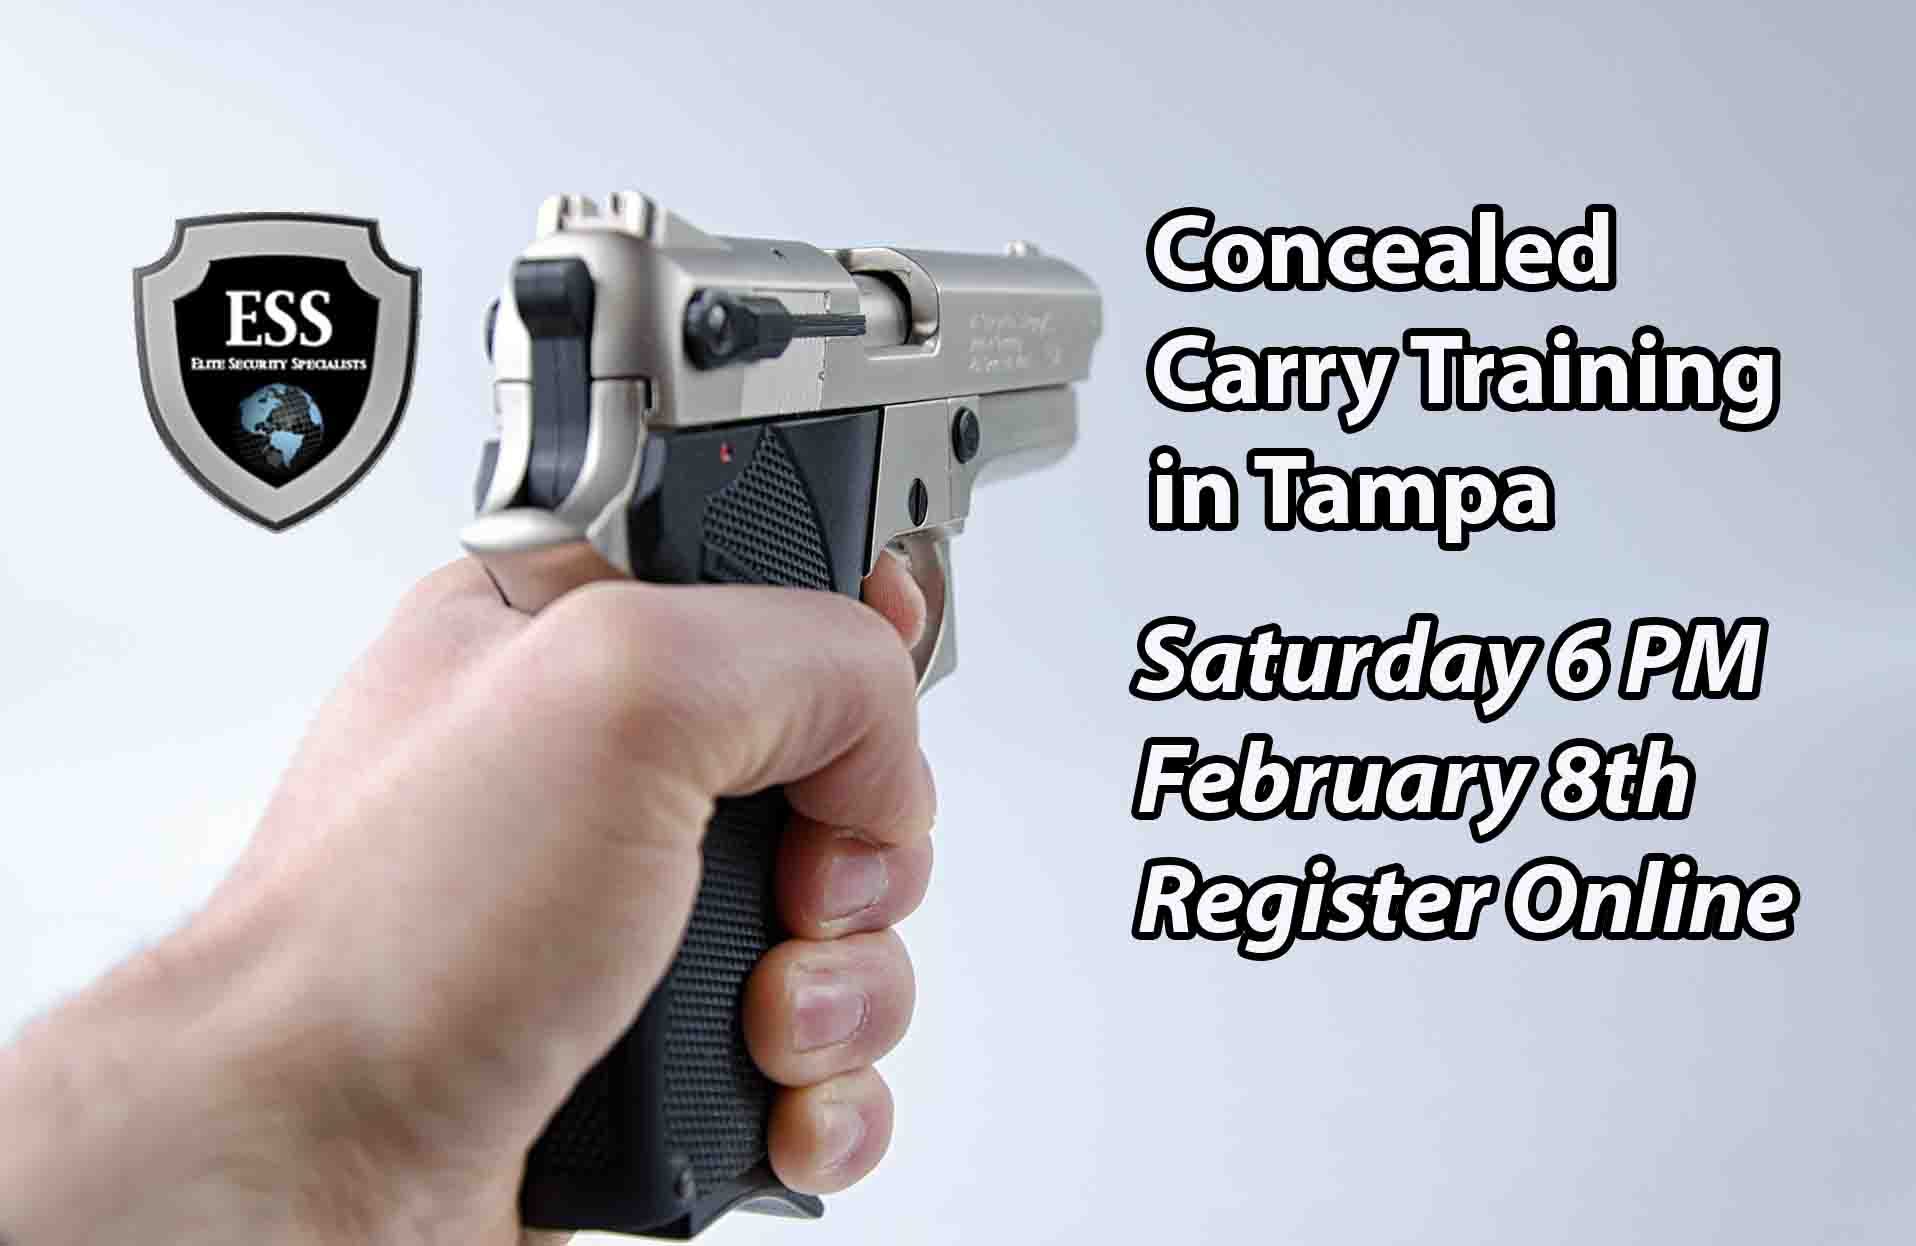 Tampa Concealed Carry Training Saturday FEB 8 6PM